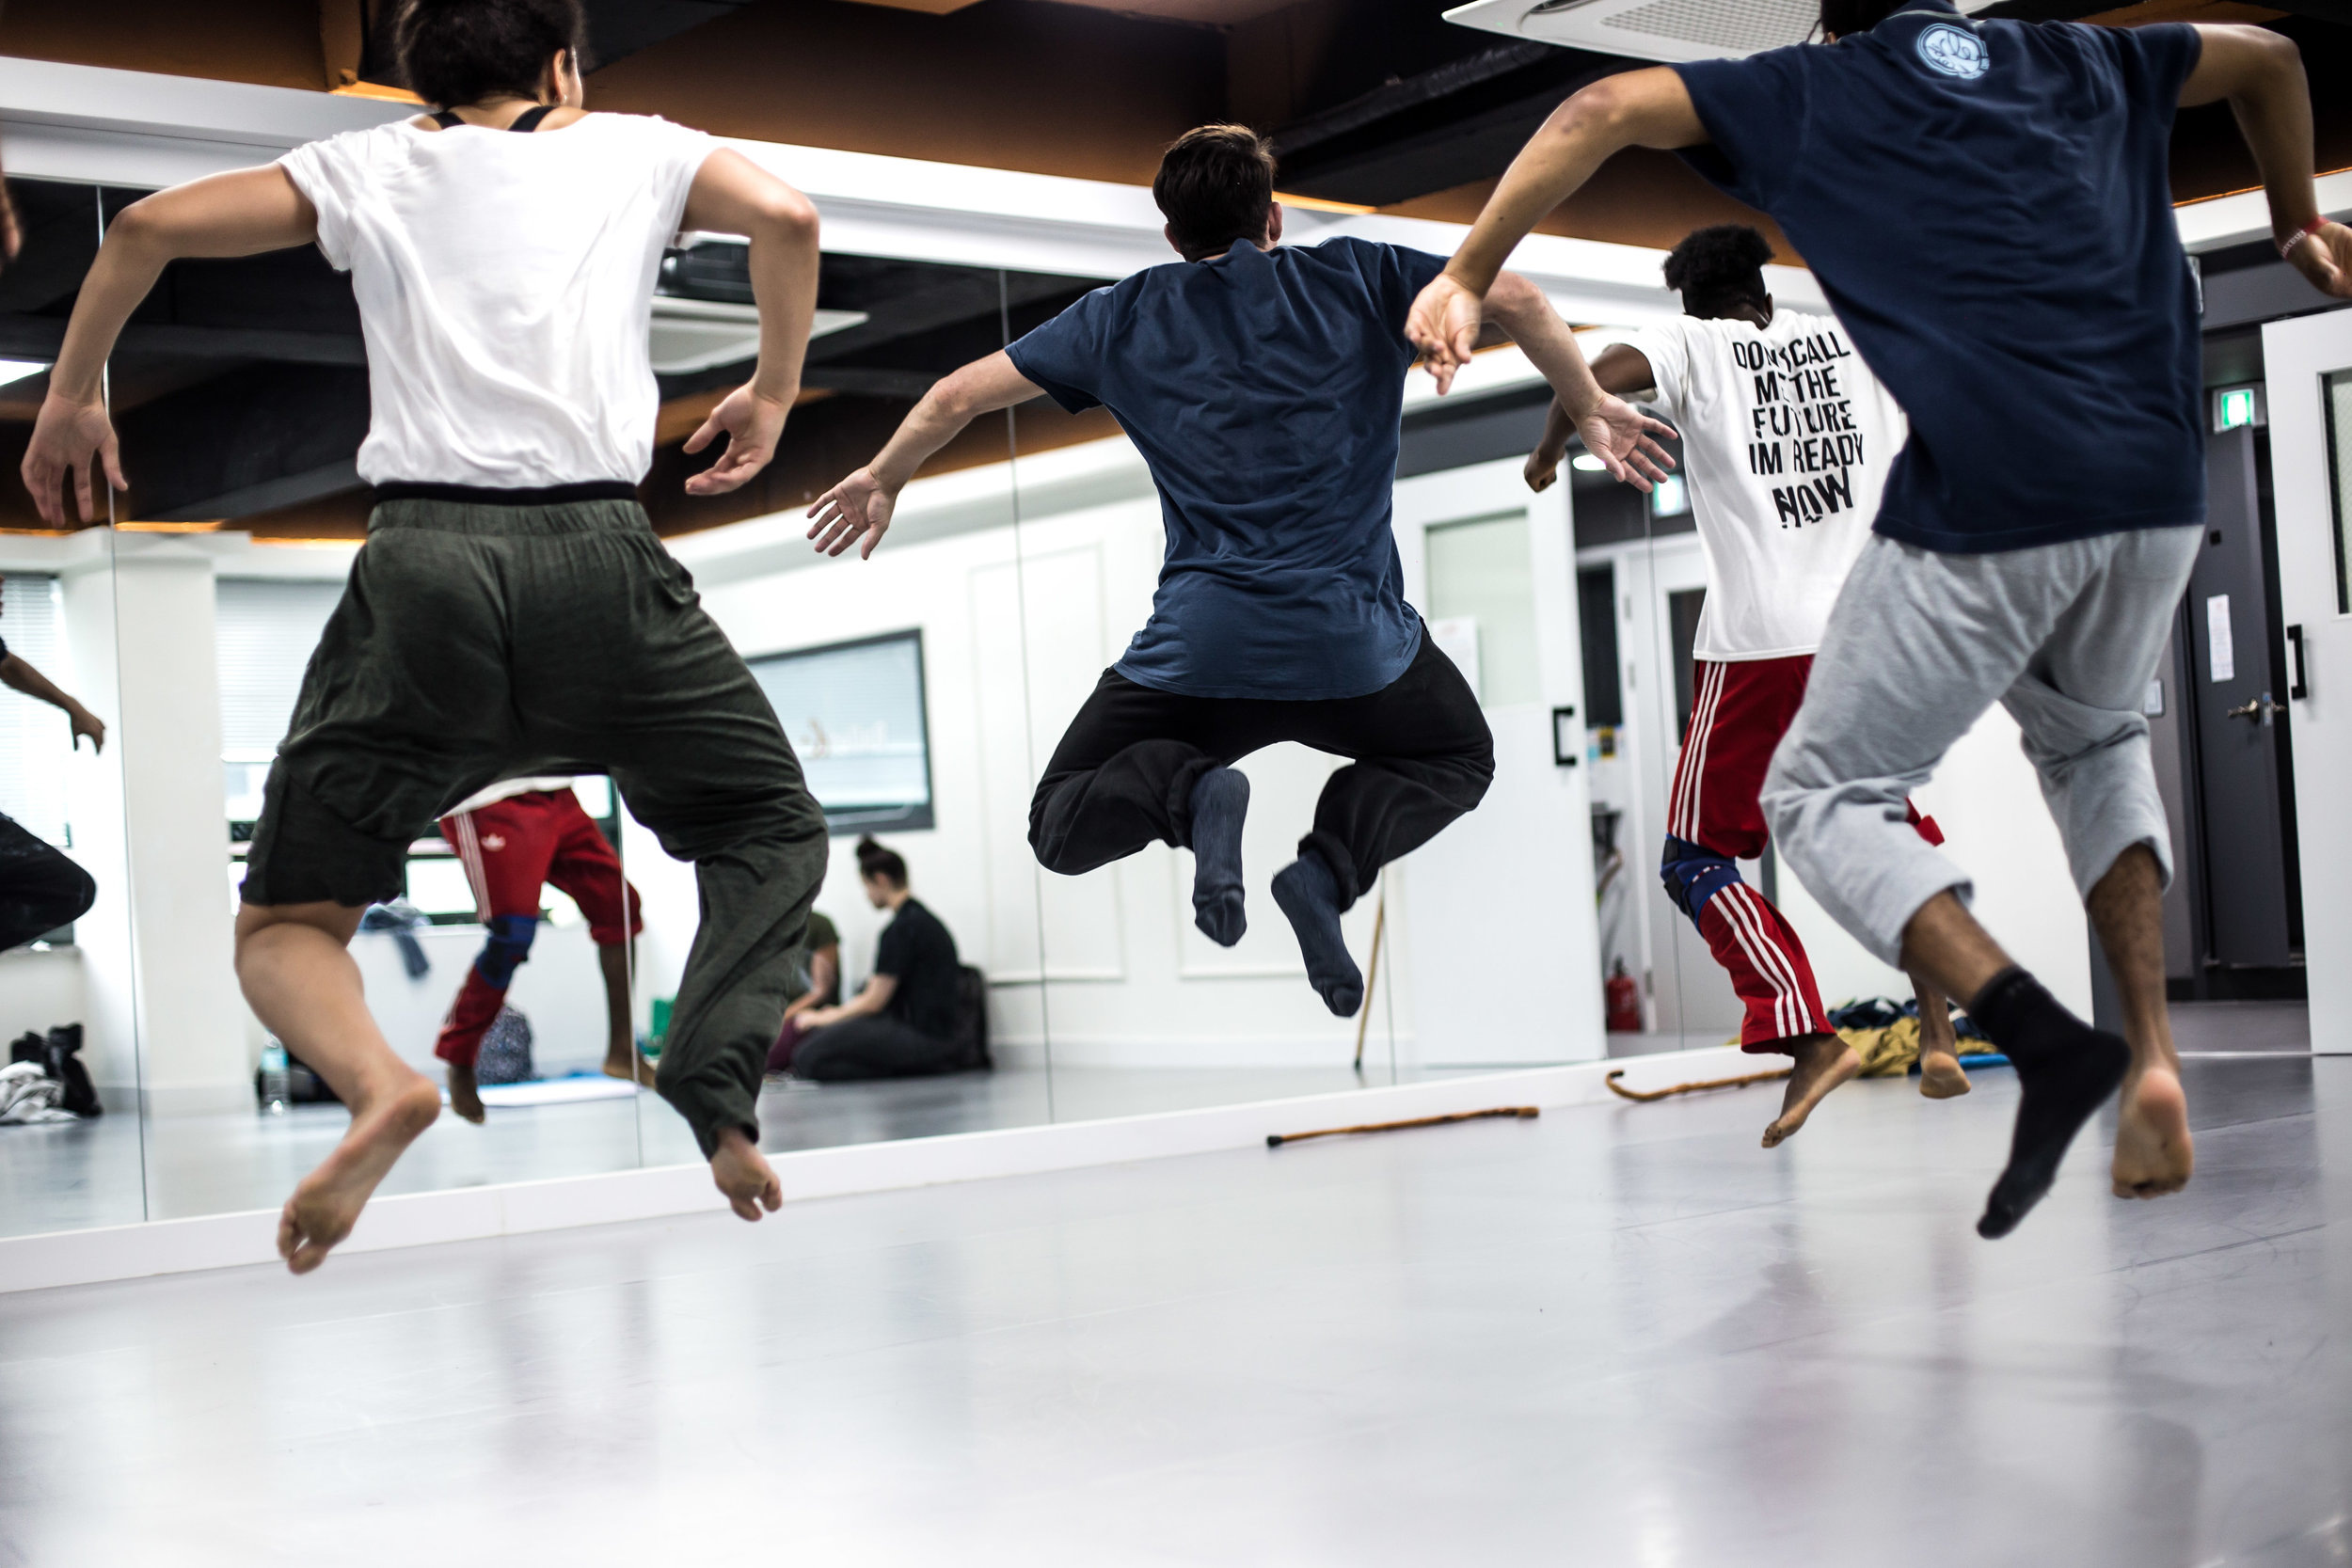 Dance Collaboration Between the company Far From The Norm and 4 Korean Dance Artists - Rehearsals